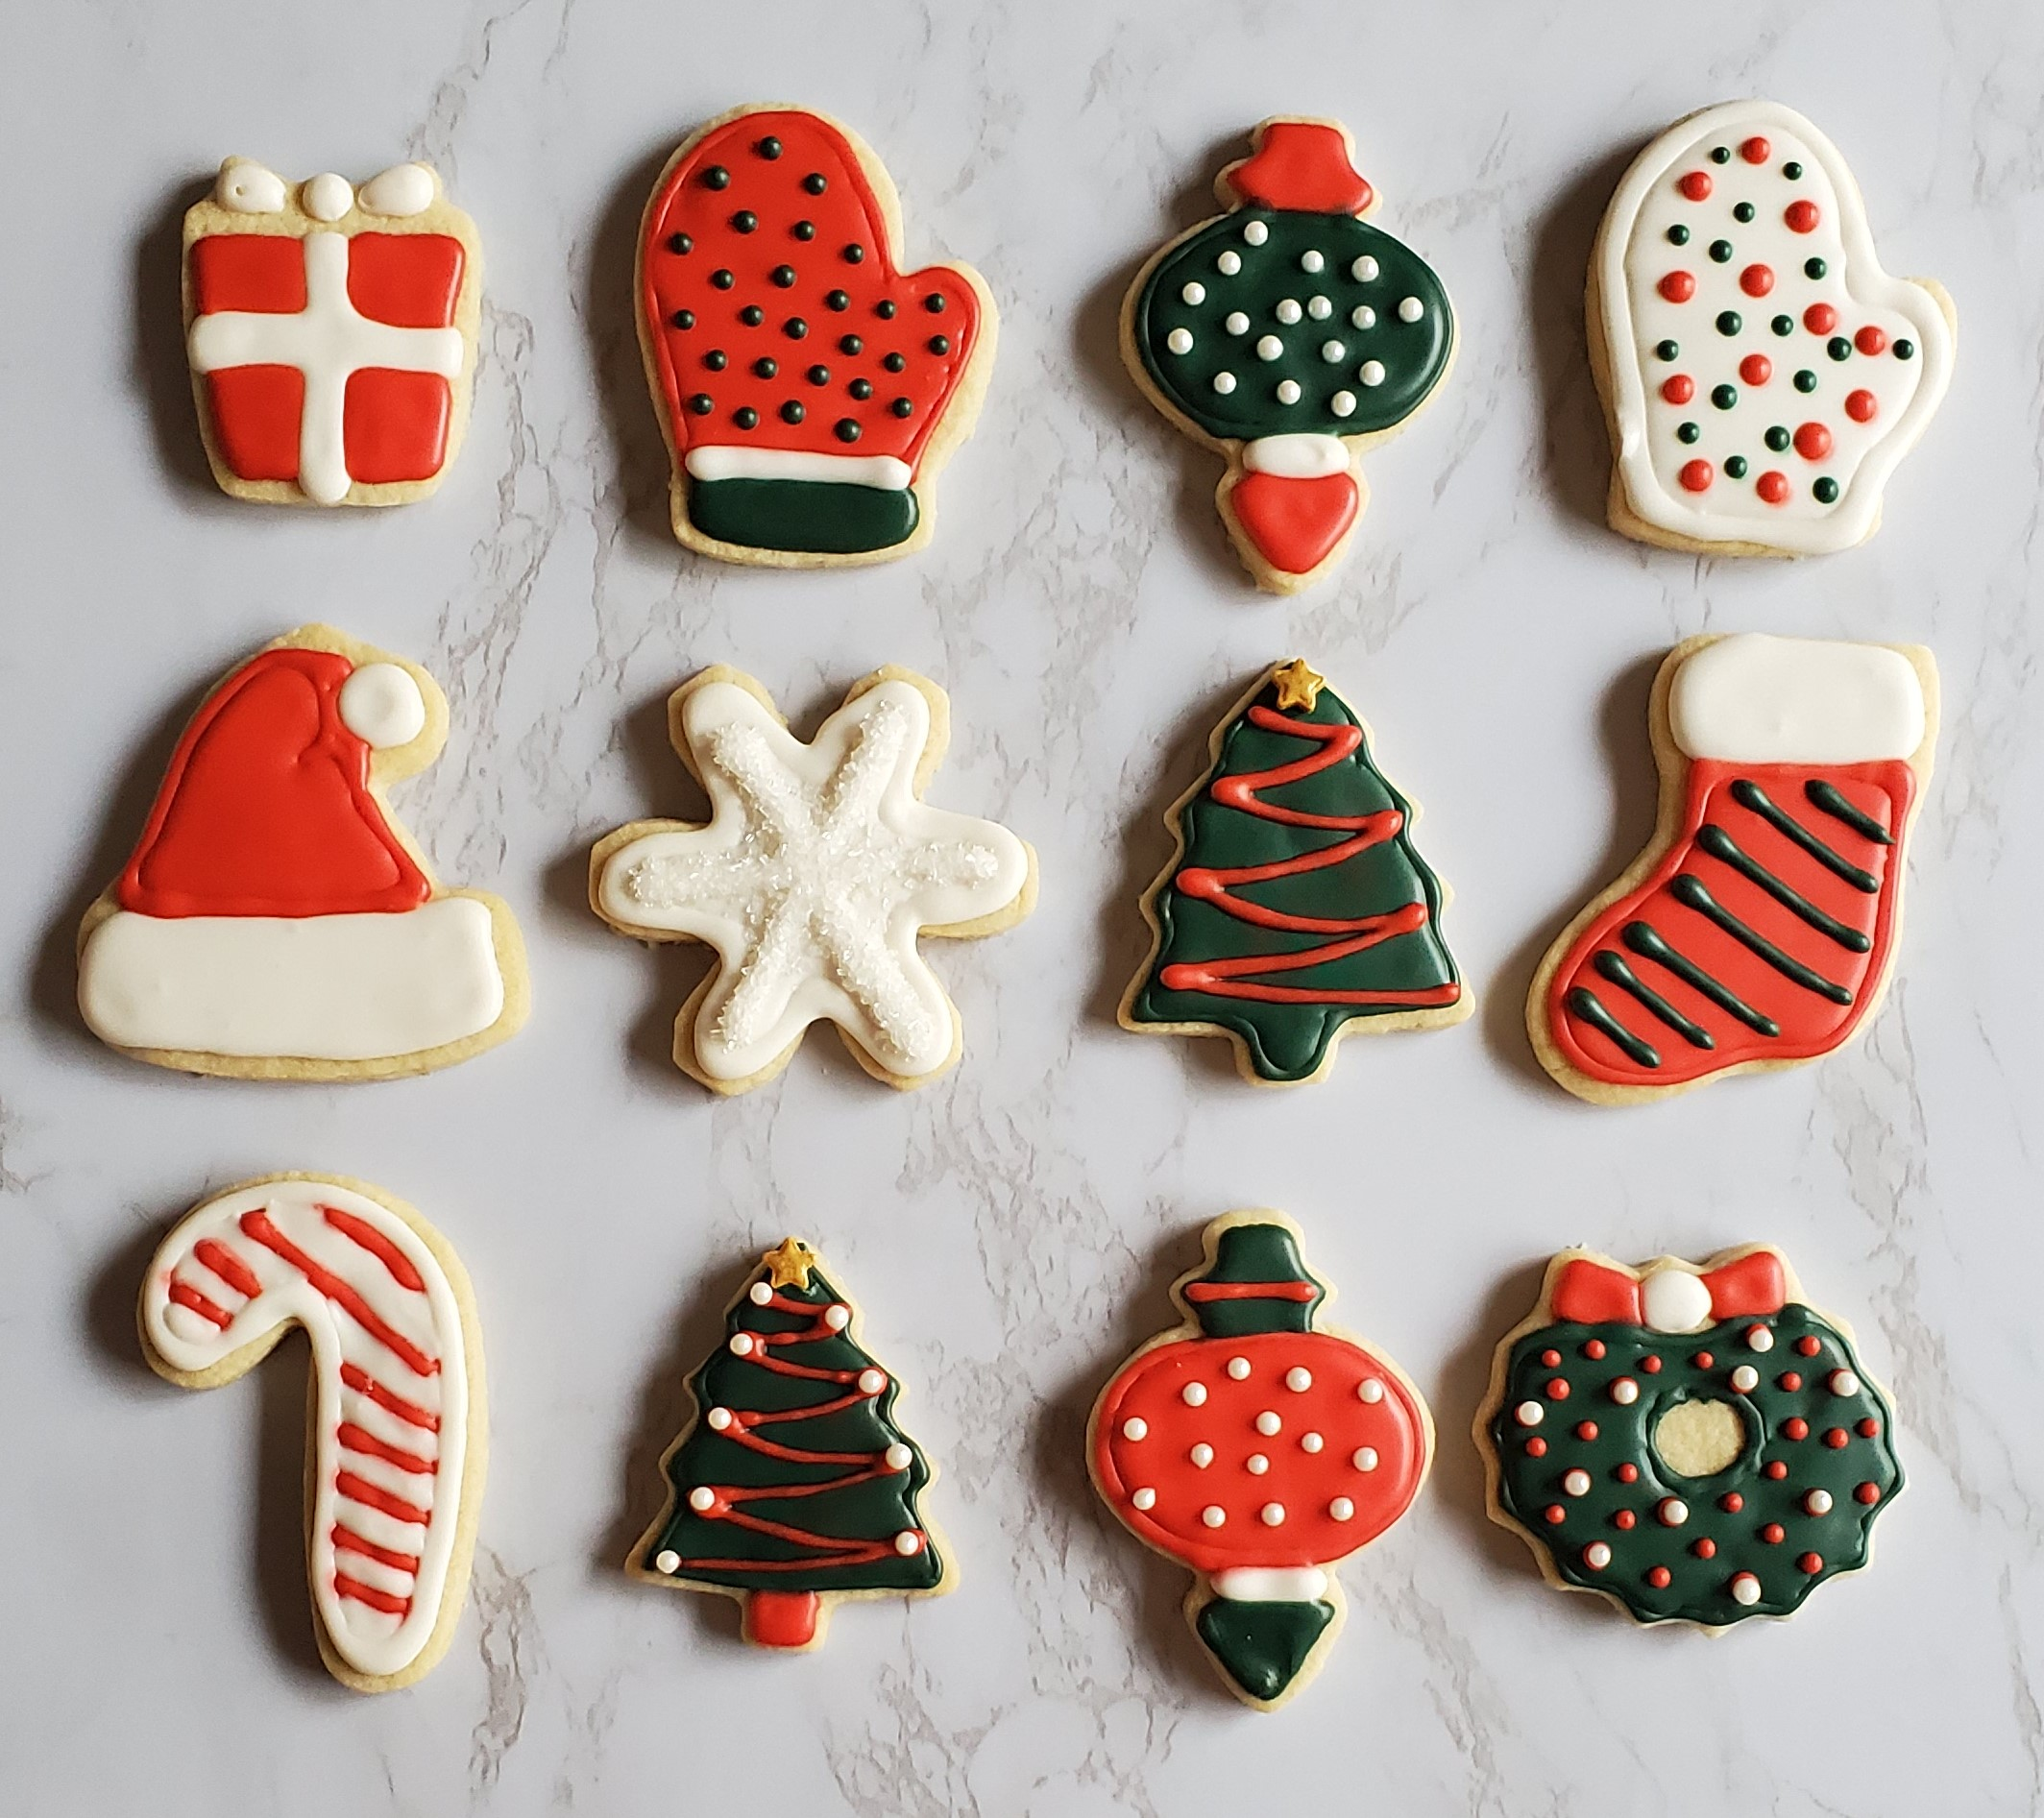 Christmas cookies in the shapes and decorated as gifts, mittens, ornaments, snowflakes, candy canes, christmas trees, wreaths and stockings. Decorated with royal icing in red white and green and sprinkles!